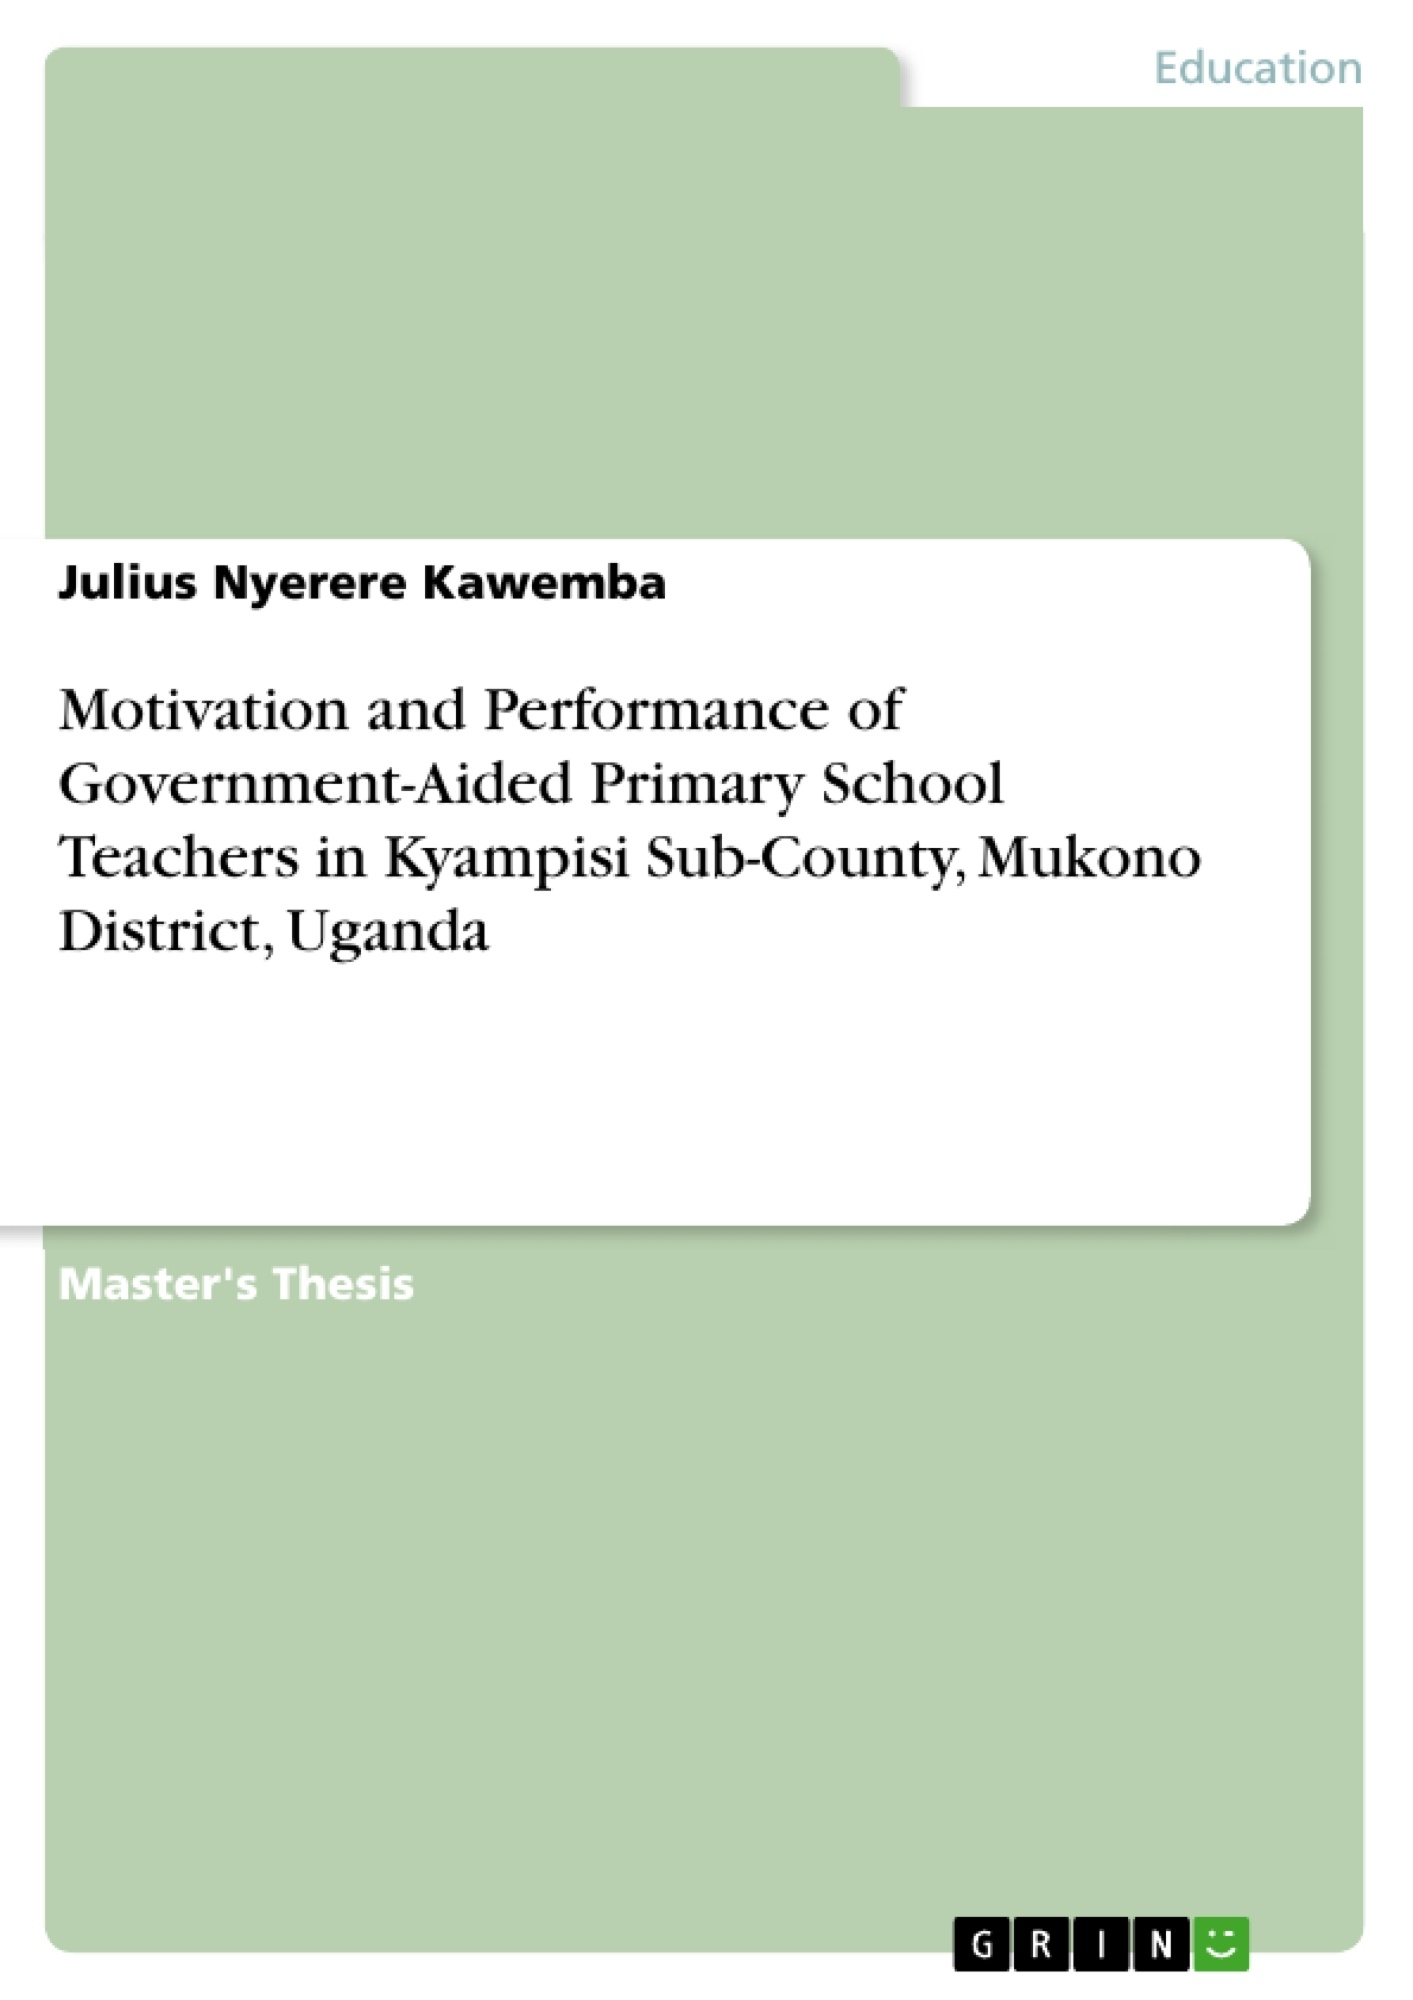 Title: Motivation and Performance of Government-Aided Primary School Teachers in Kyampisi Sub-County, Mukono District, Uganda